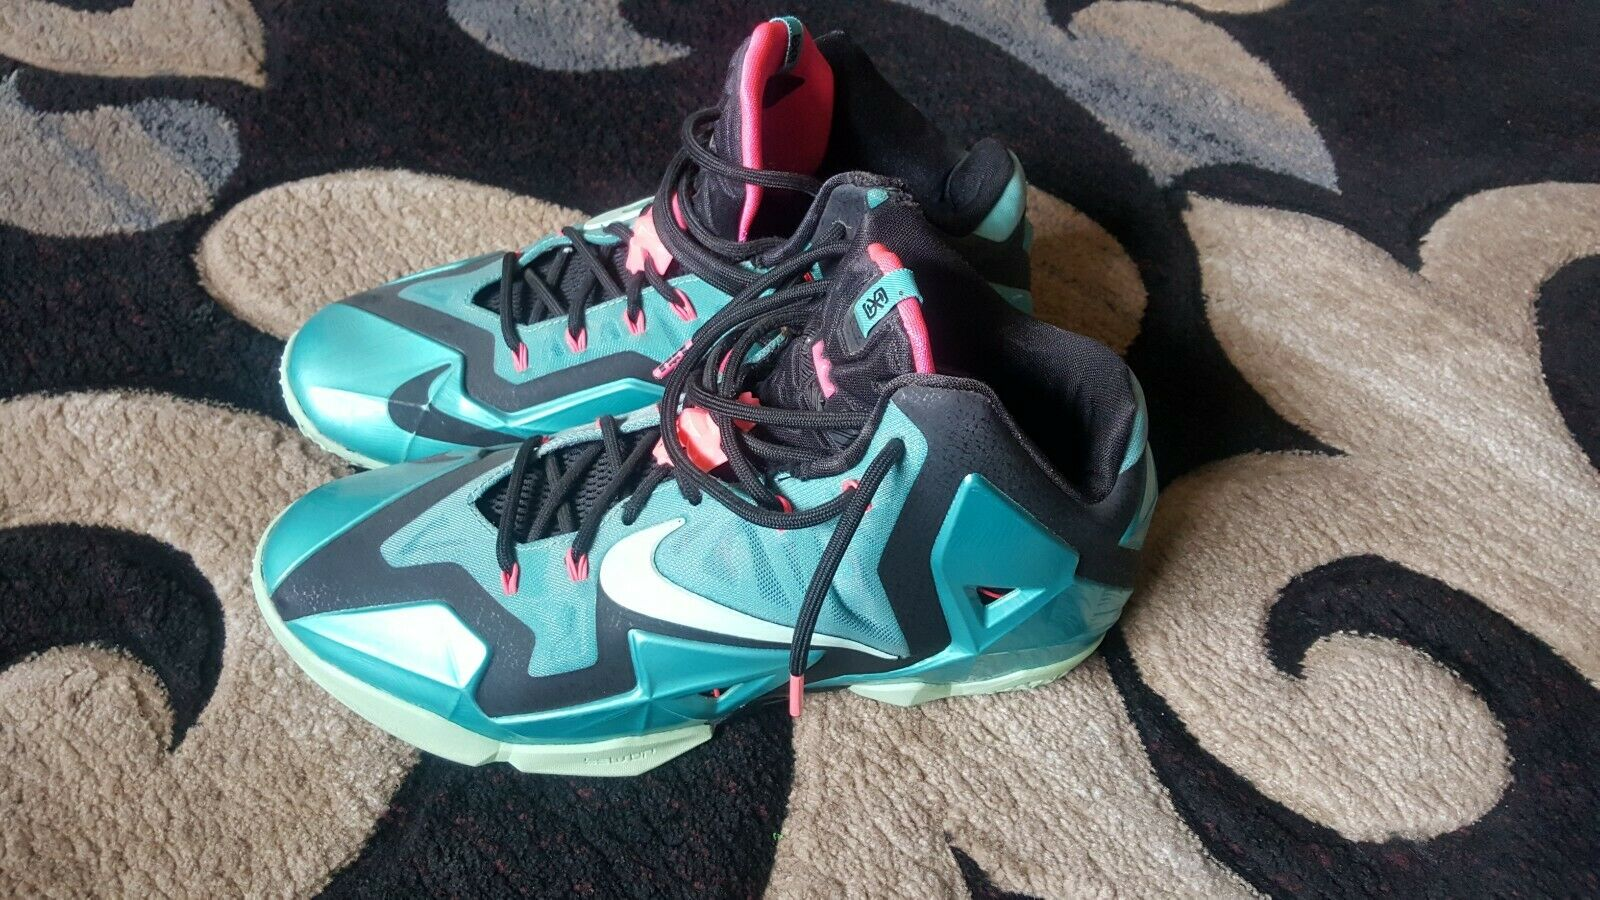 new style afcec 65a66 Used Nike Nike Nike LeBron 11 South Beach Size 11 Men s dedf93